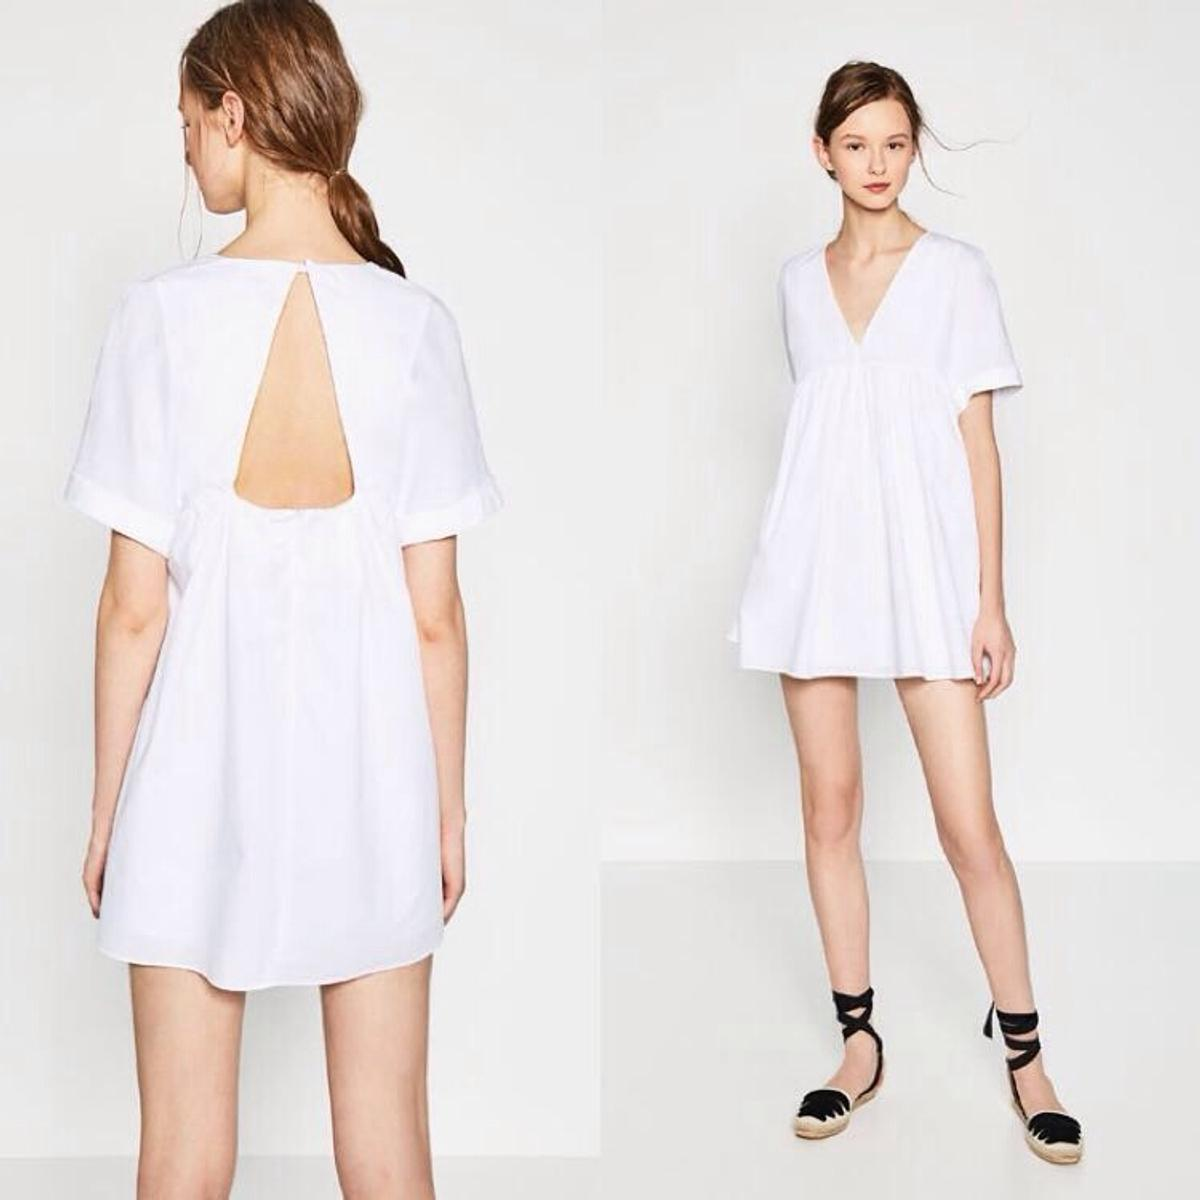 51f106a0692a37 Zara TRF Poplin Jumpsuit Blogger Dress XS in SW17 London for £45.00 for  sale - Shpock